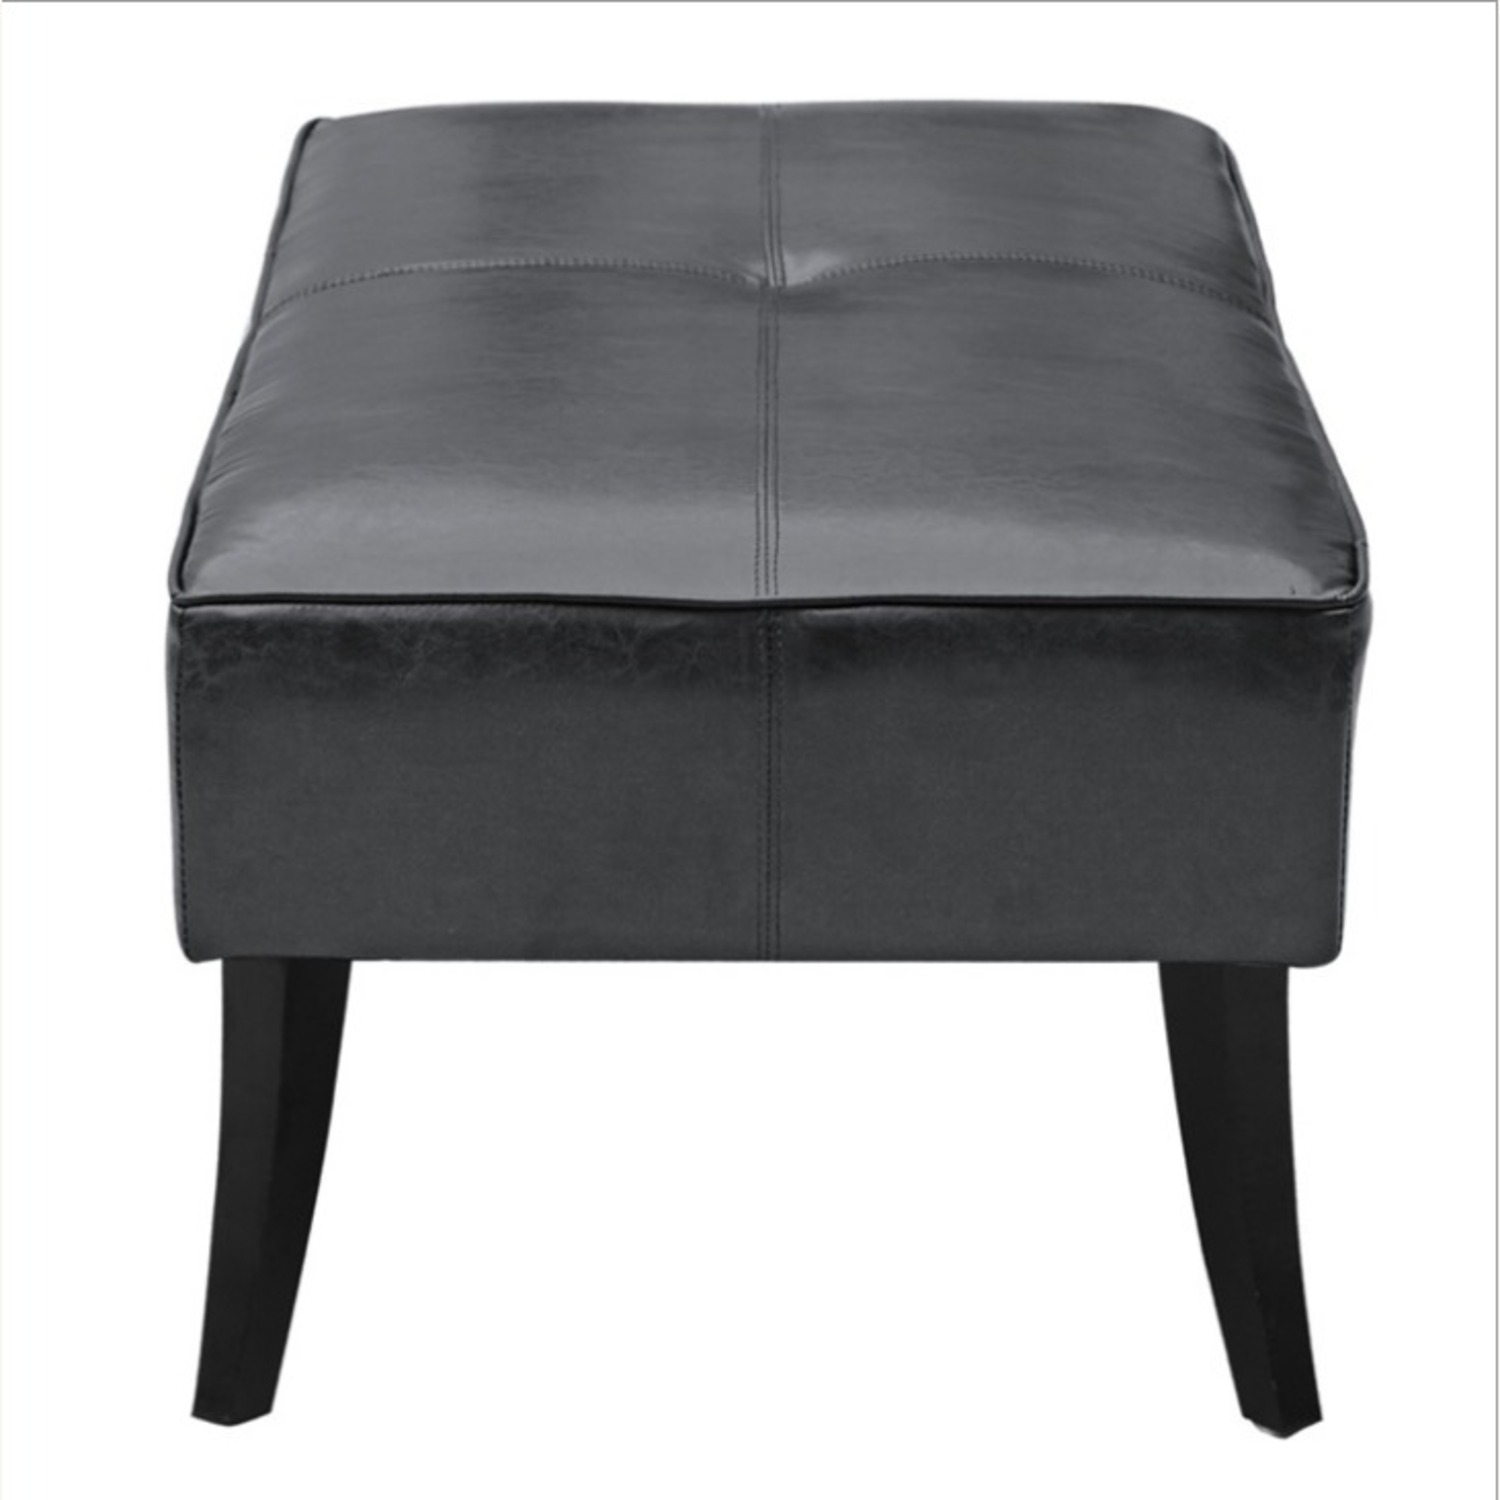 Bench In Black Bonded Leather W/ Wood Frame - image-2